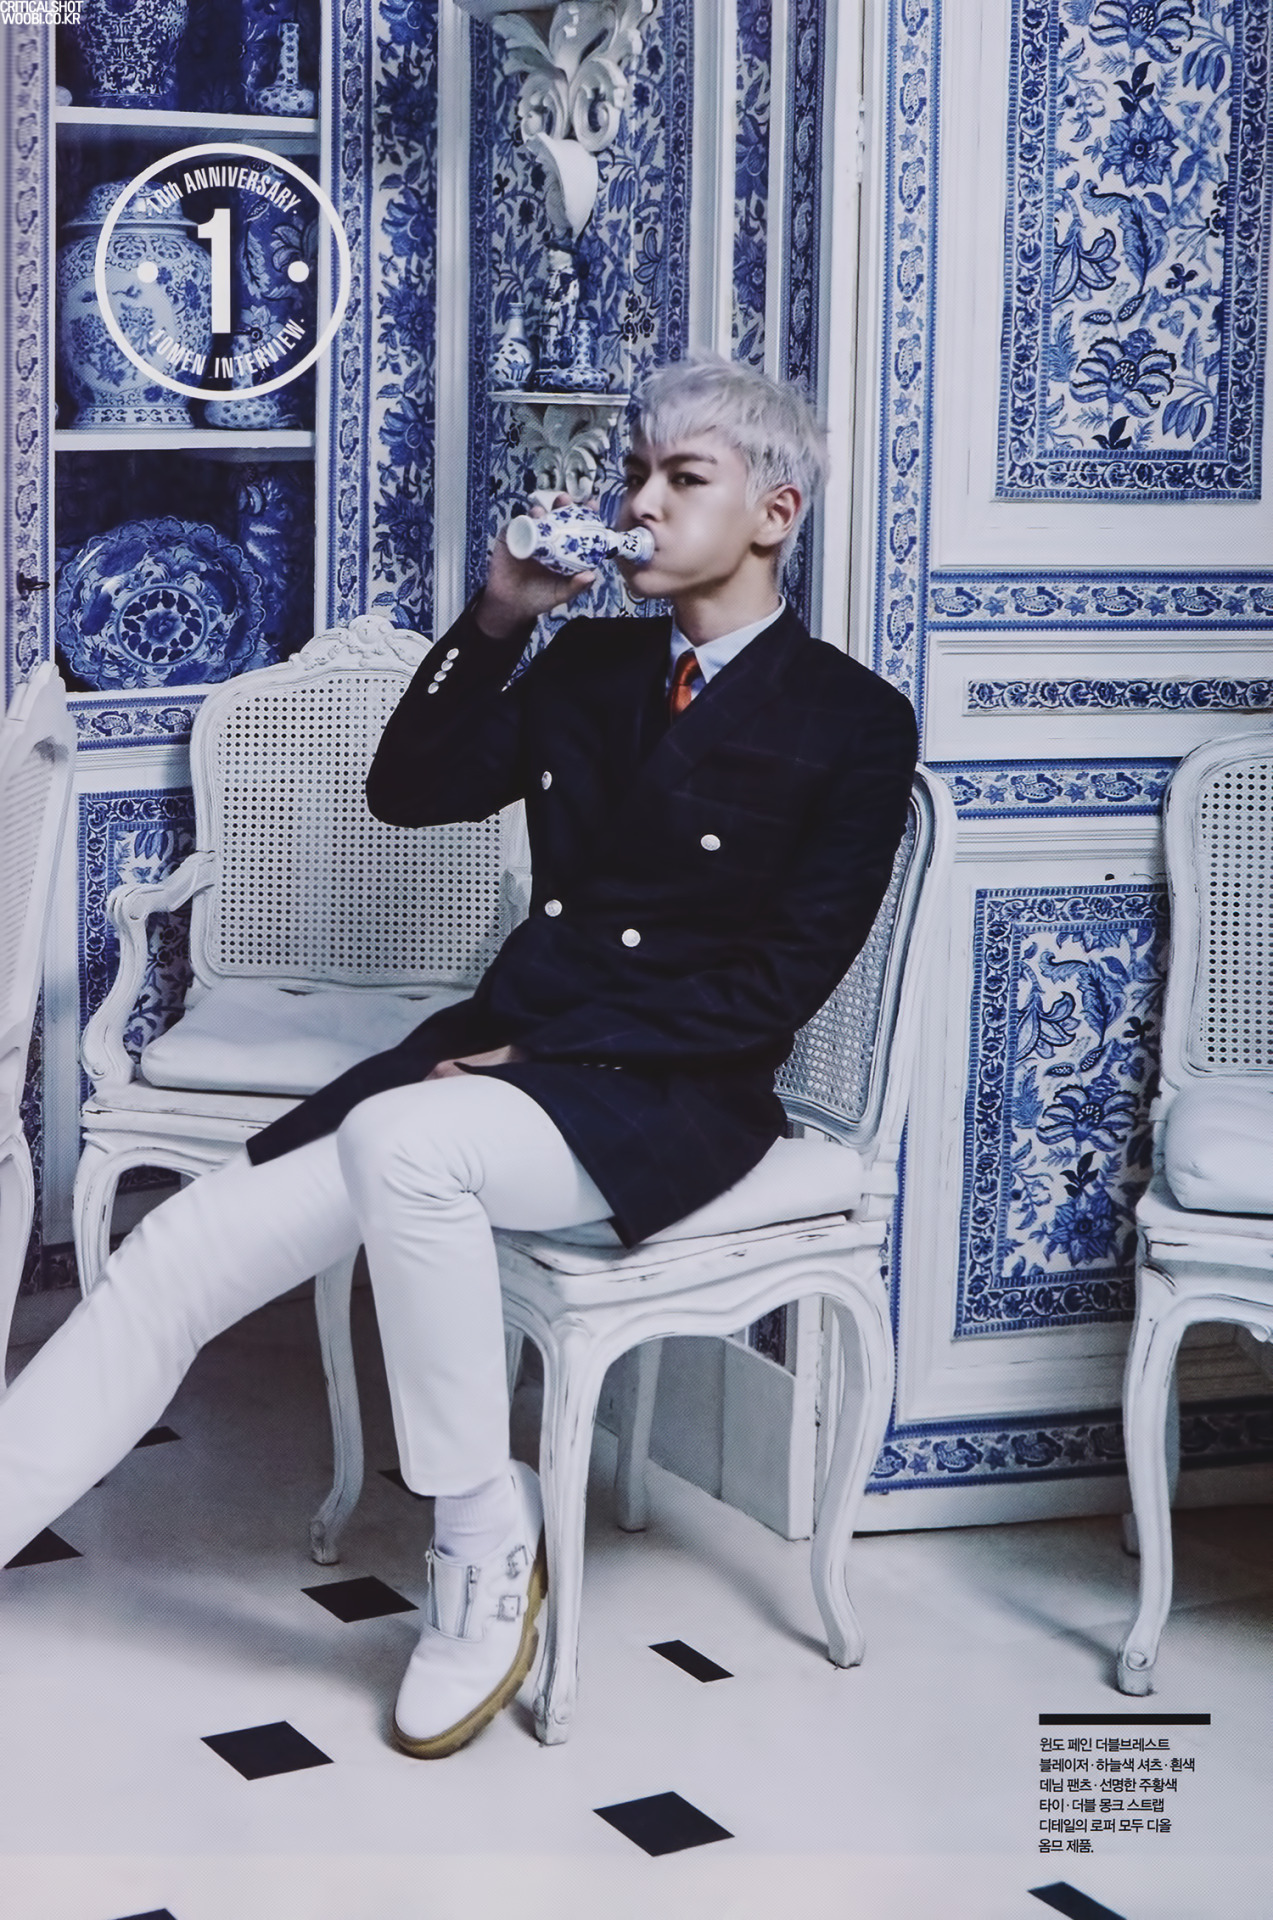 TOP Arena Homme March 2016 scans by CriticalShot (10).png